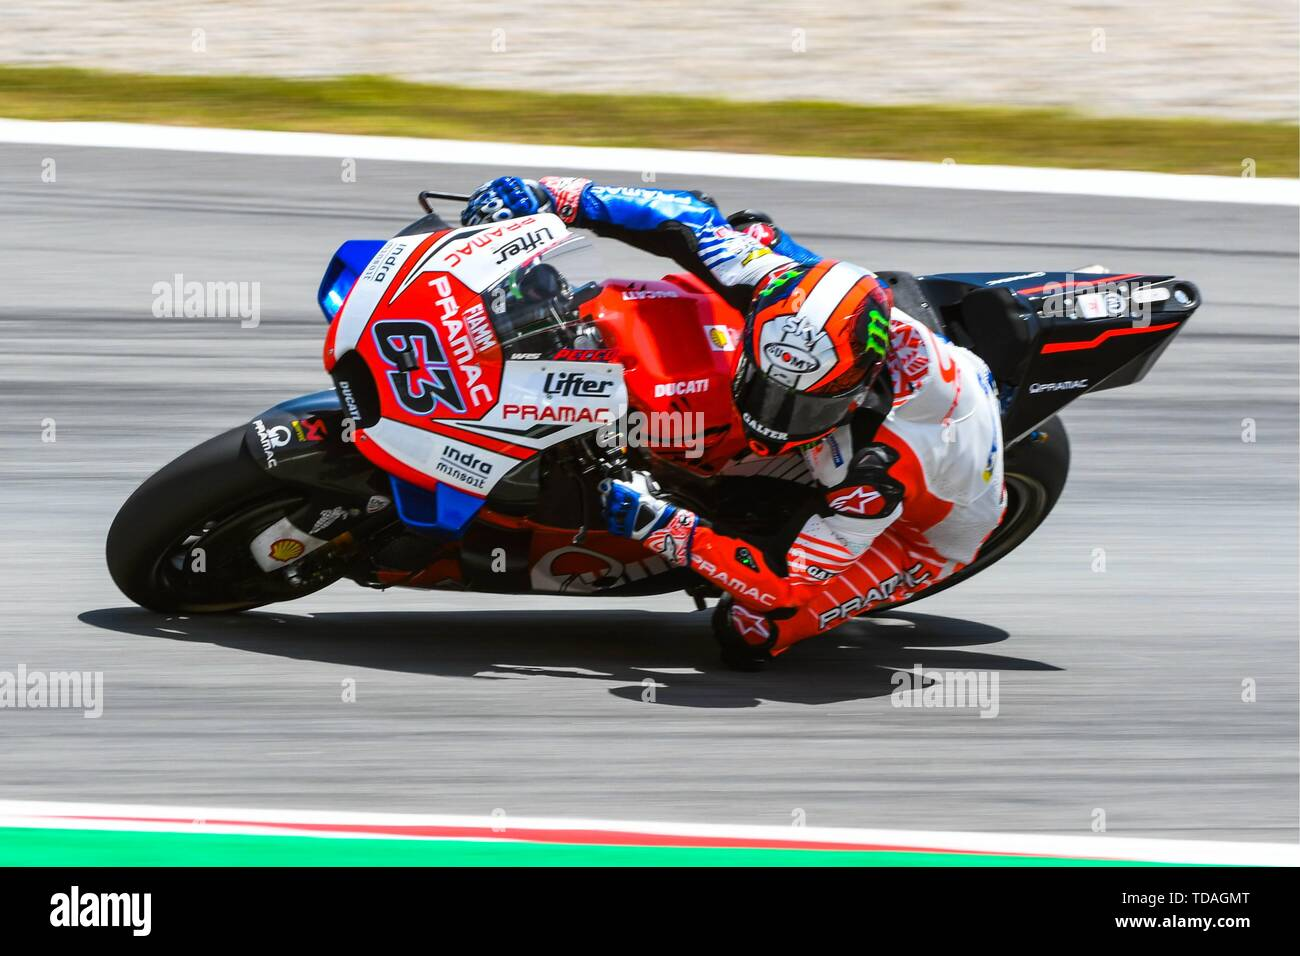 FRANCESCO BAGNAIA (63) of Italy and Pramac Racing during the MOTO GP Free  Practice 2 of the Ctalunya Grand Prix at Circuit de Barcelona racetrack in  Montmelo, Spain on June 14, 2019 (